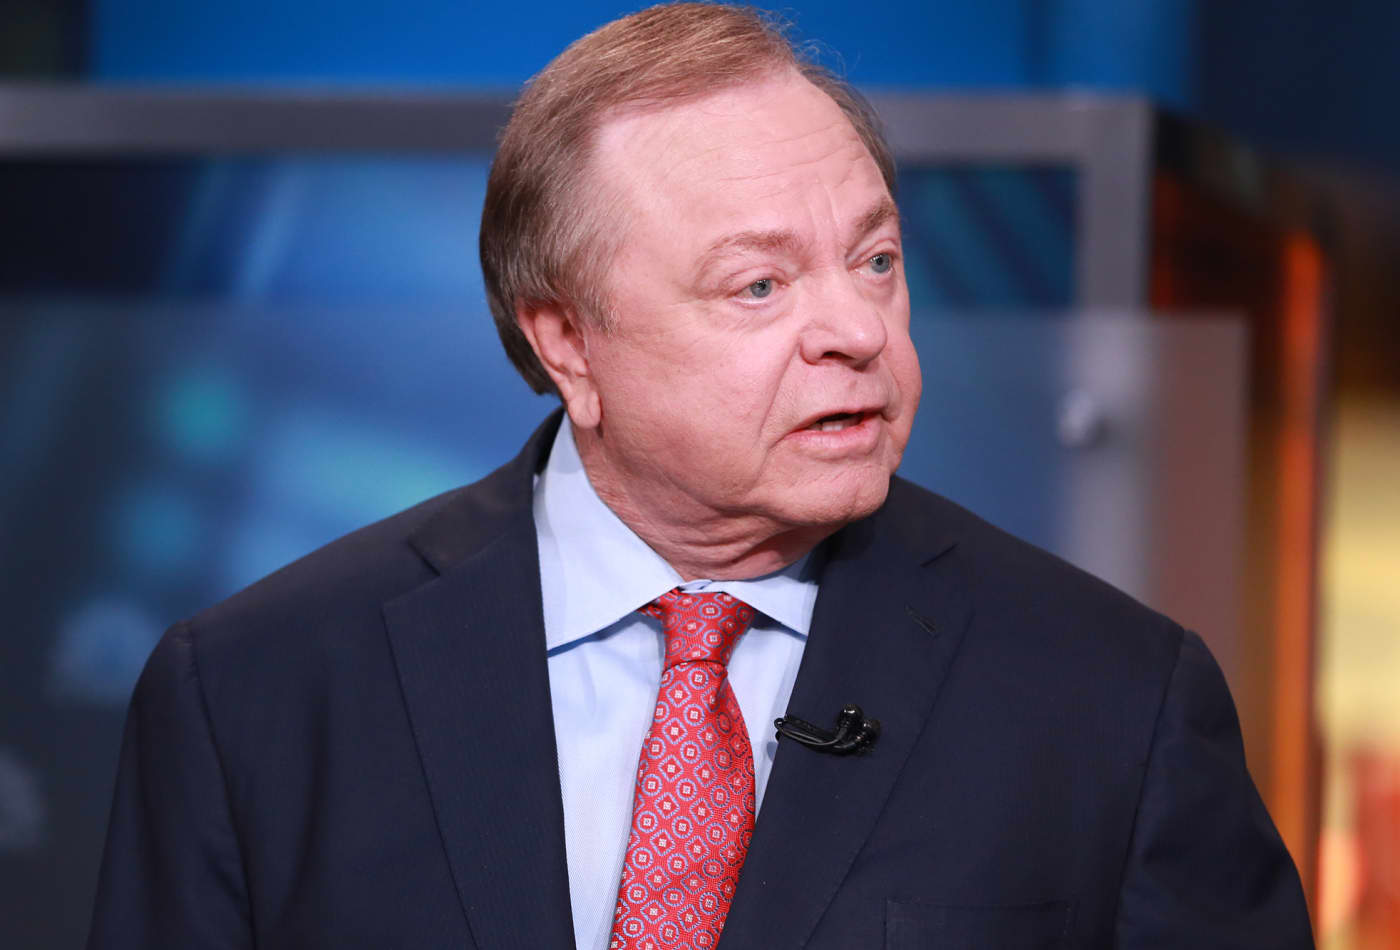 Harold Hamm warns oil prices below $40 will idle US drilling, cautions producers to be 'prudent'